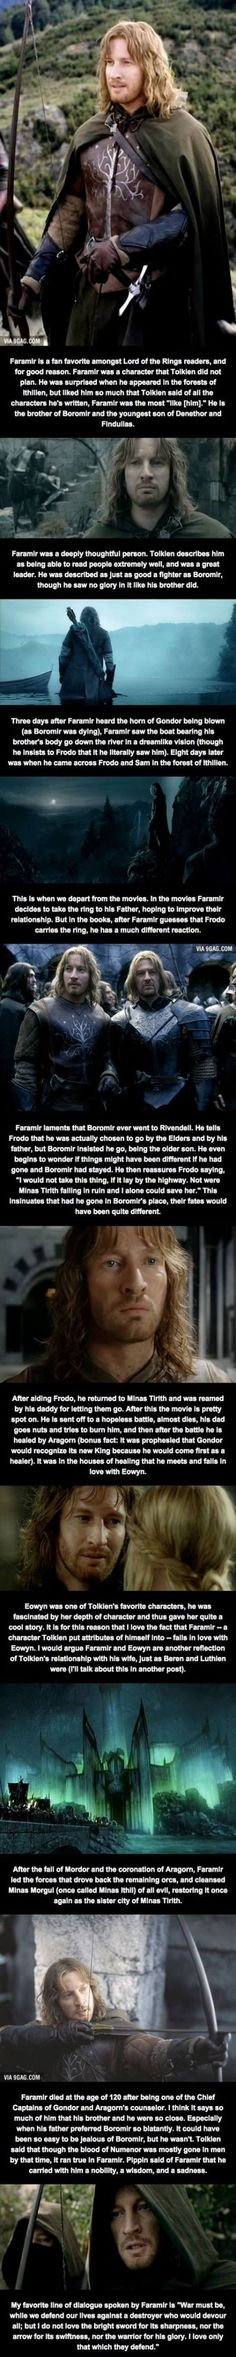 I do positively adore Faramir. Relatively Unknown LoTR Fact (Part - Faramir Captain of Gondor. Lord Of Rings, Crush Facts, One Does Not Simply, J. R. R. Tolkien, Love Hurts, One Ring, Middle Earth, The Hobbit, Hobbit Hole